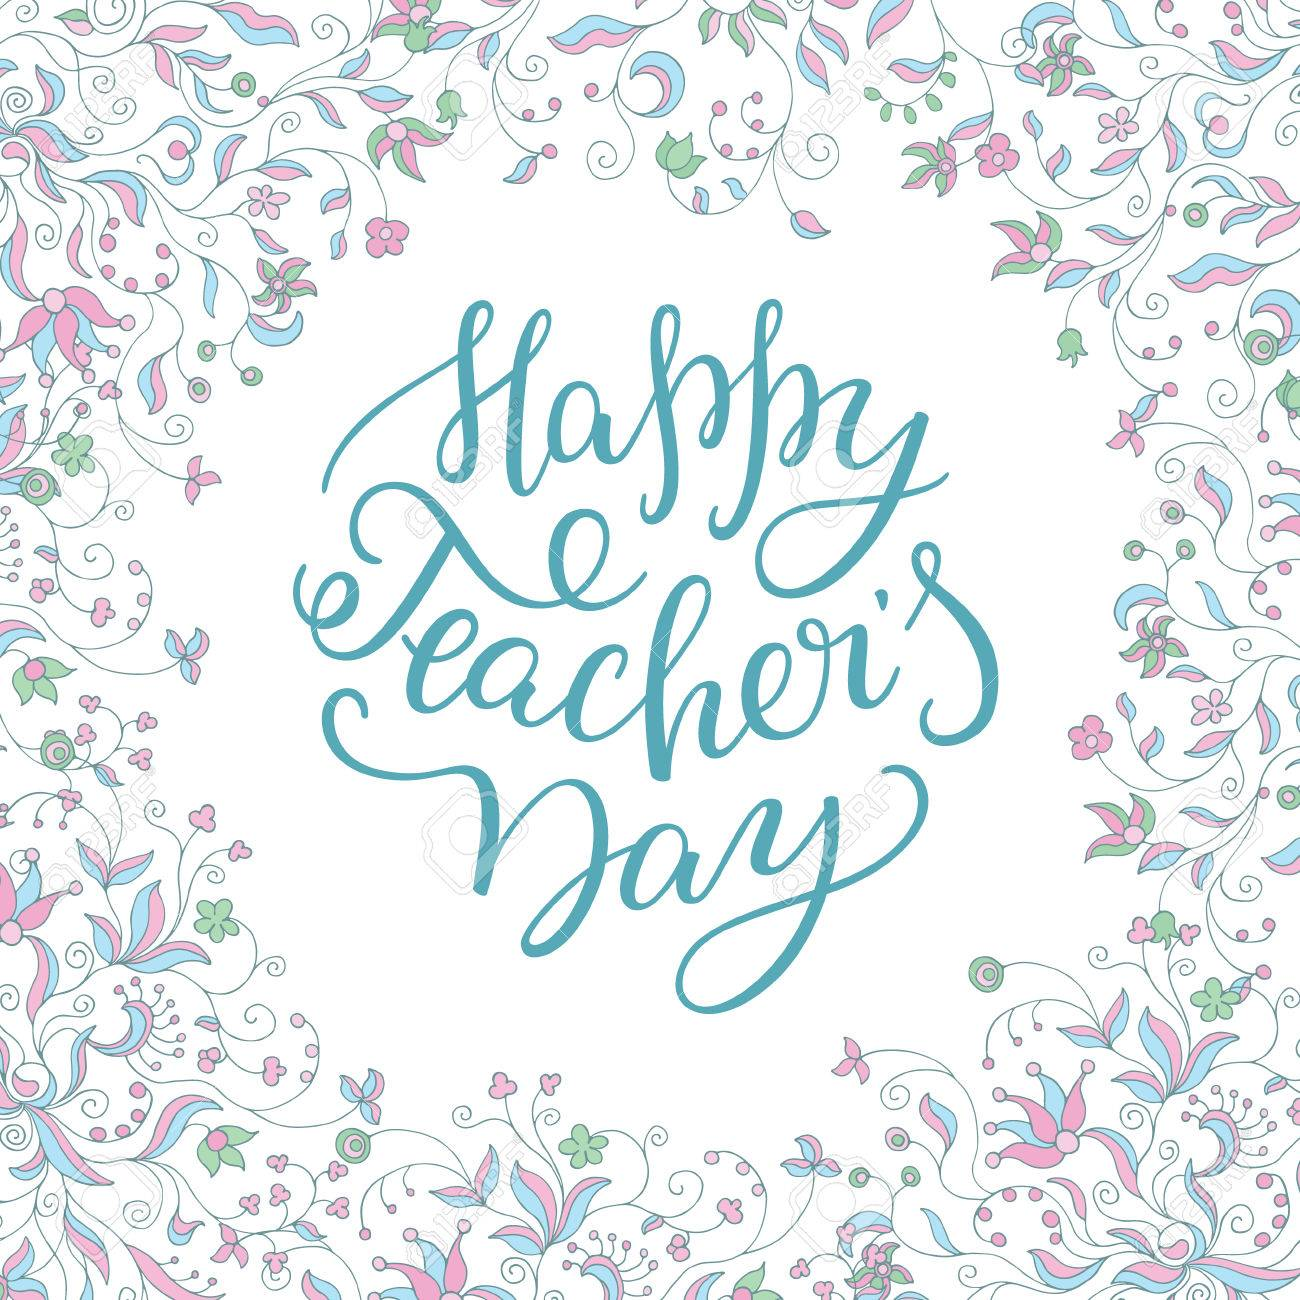 Happy teachers day hand lettering with flower frame template happy teachers day hand lettering with flower frame template for greeting card m4hsunfo Image collections